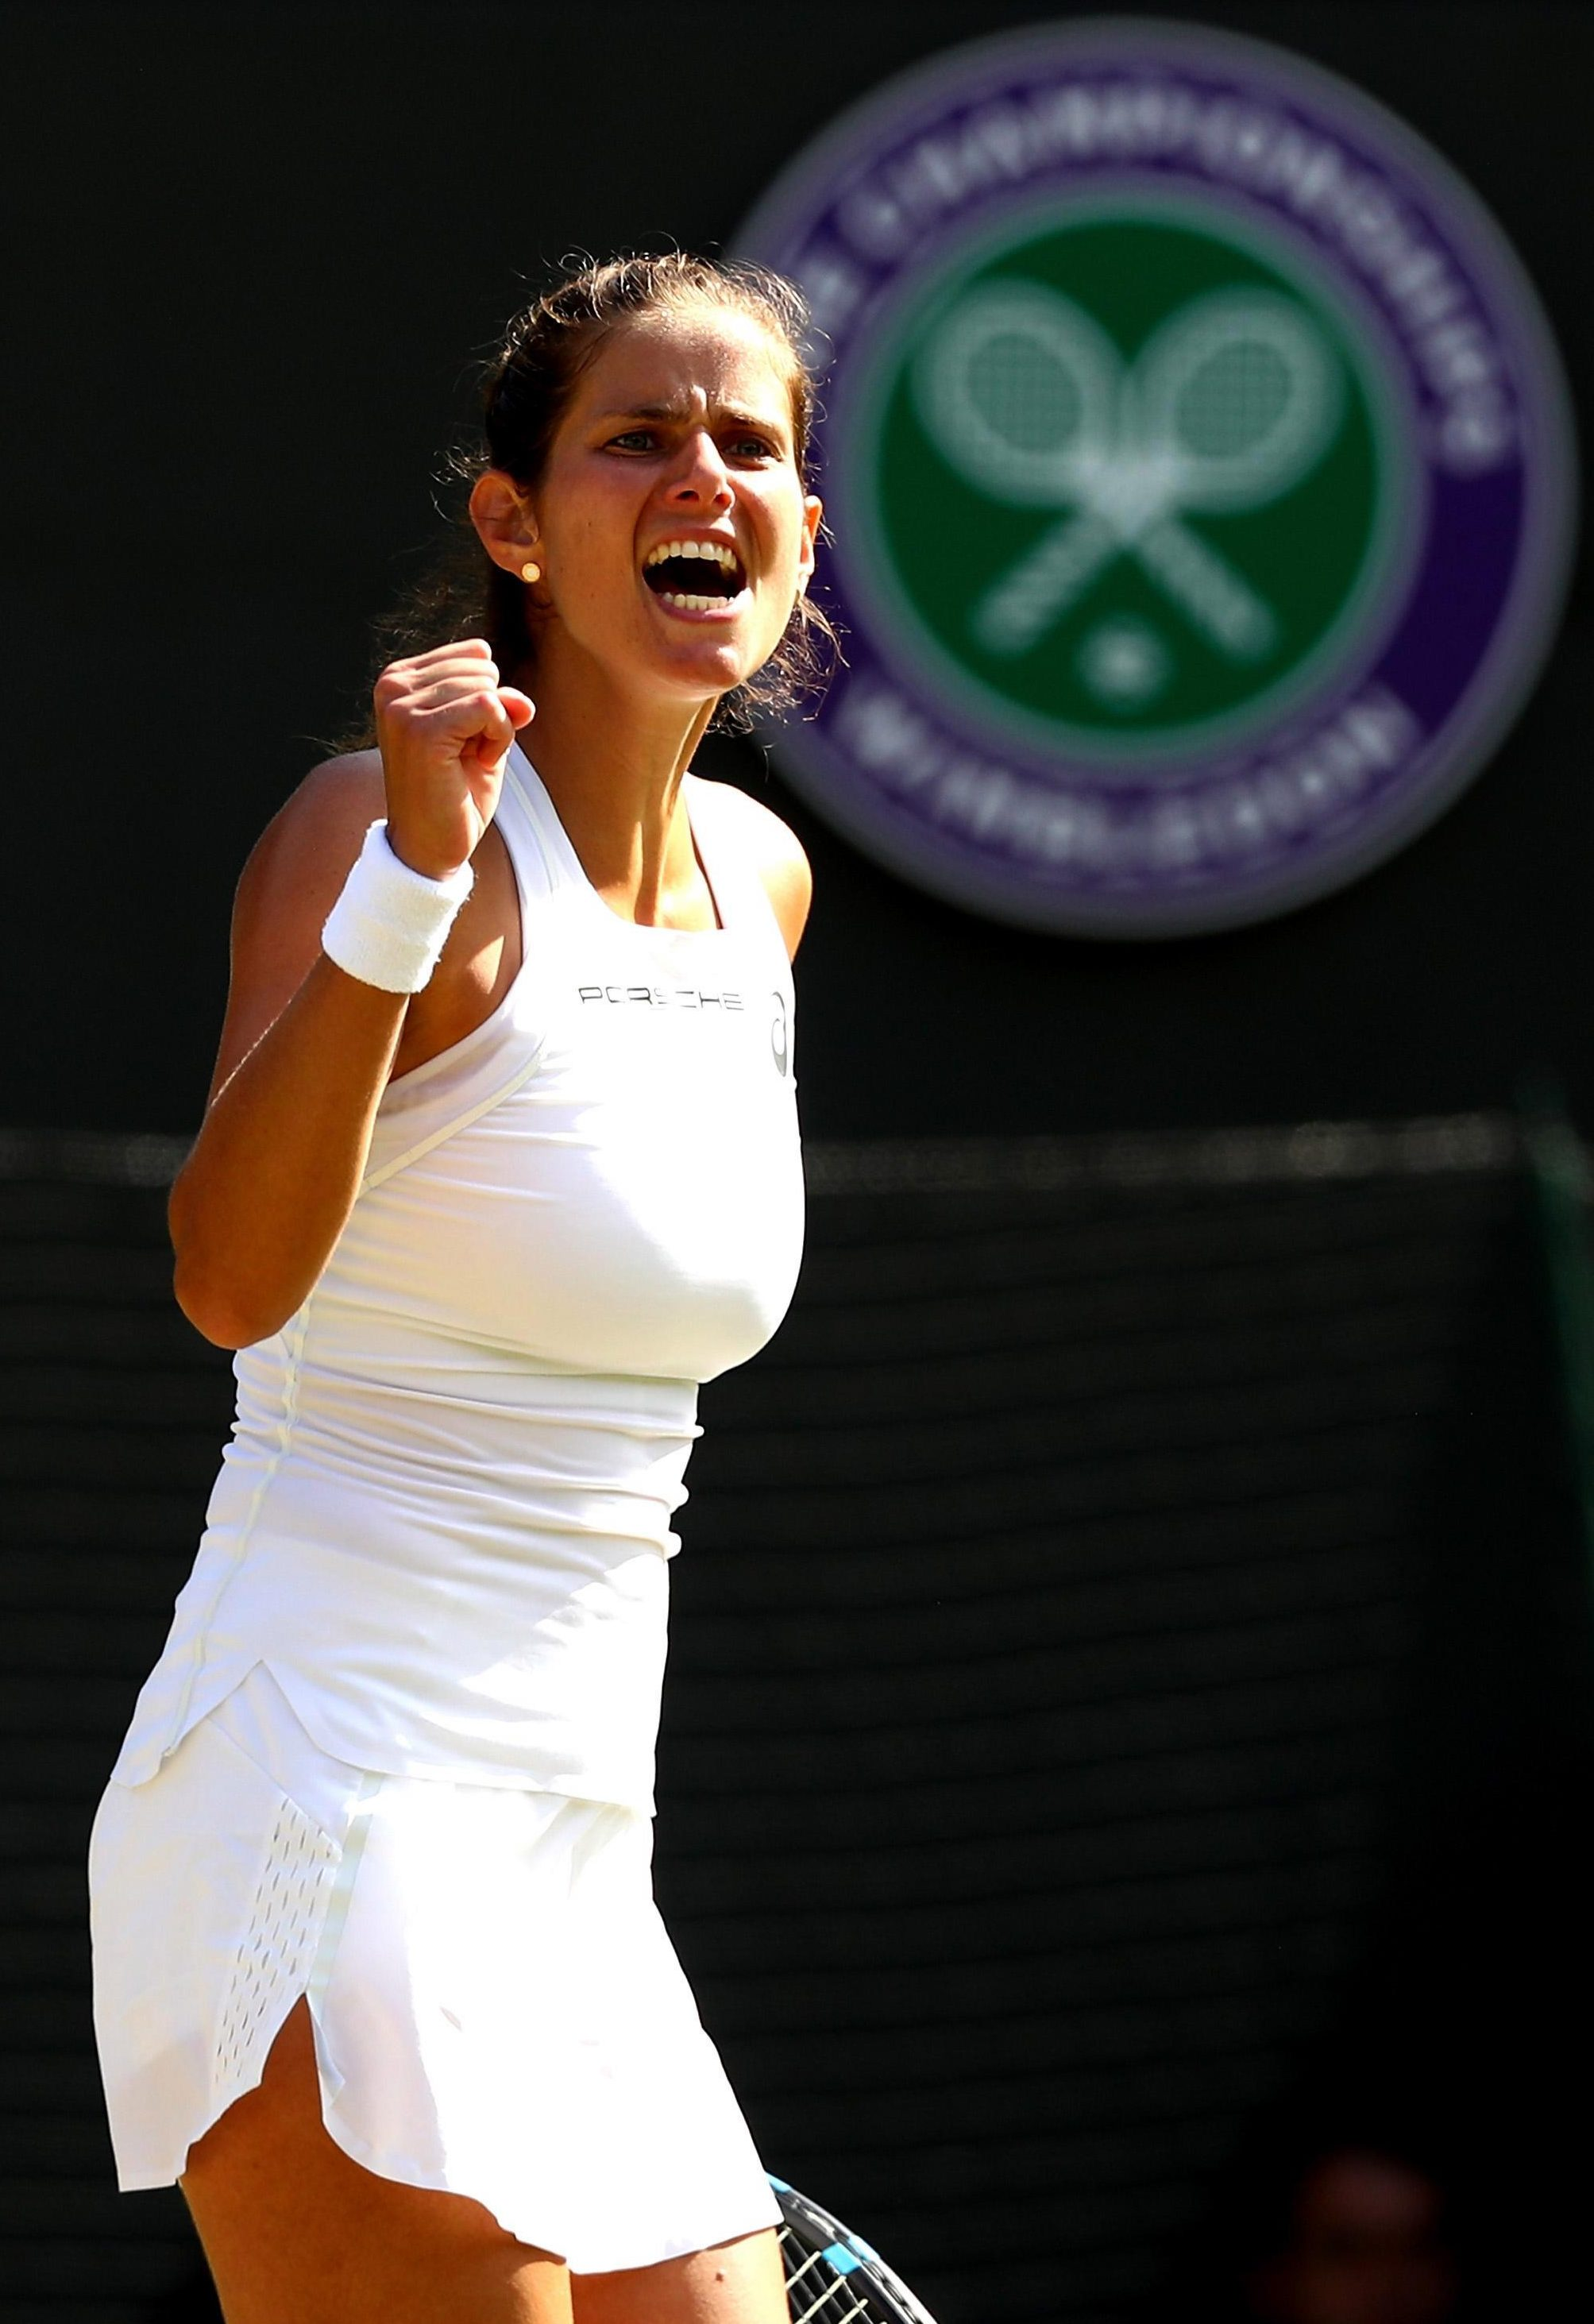 Julia Goerges saw off the challenge of Kiki Bertens to reach the semi-final